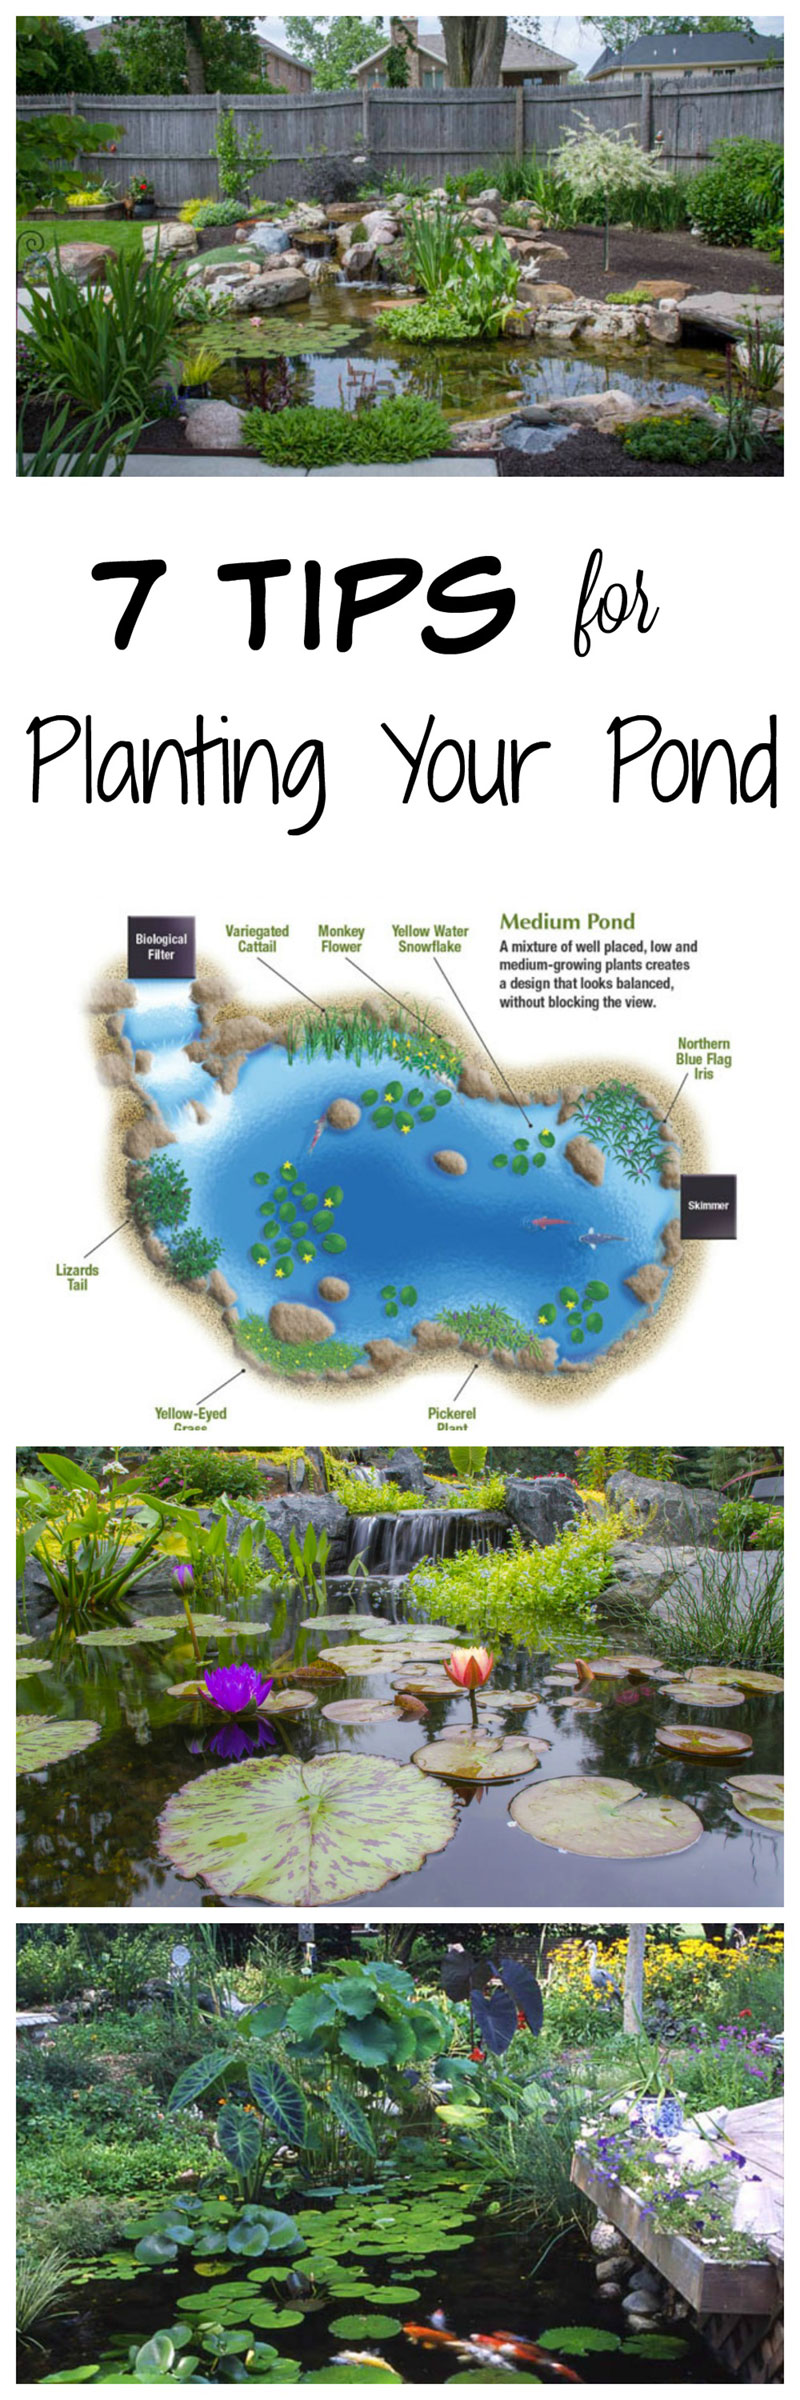 7 tips for planting your pond water gardens water for Garden pond advice